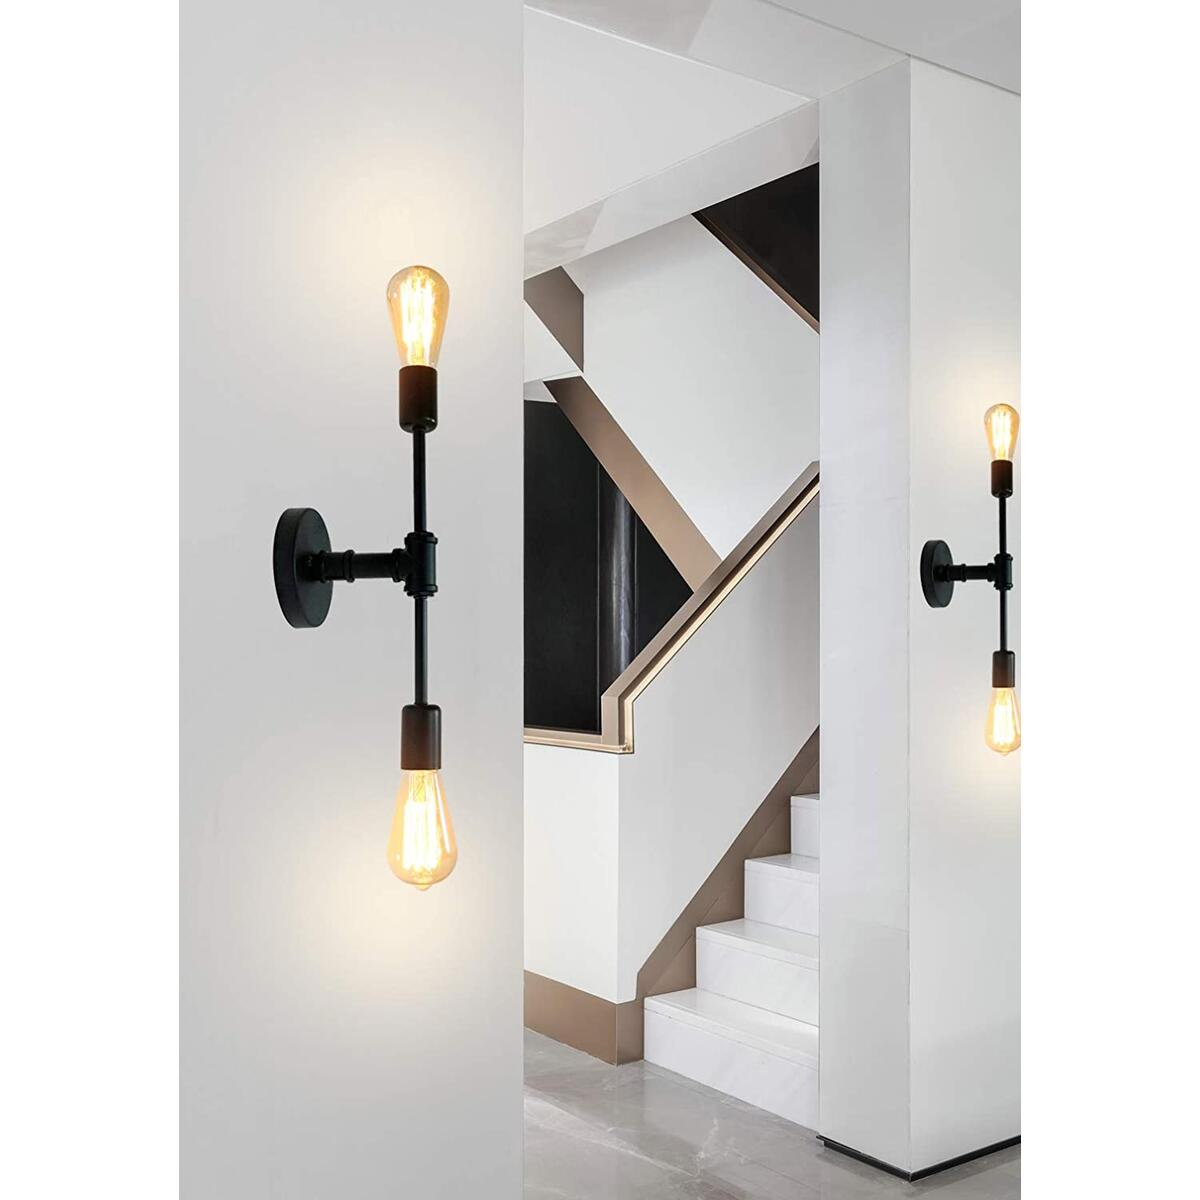 2-Light Wall Sconce Lighting Black Bathroom Light fixtures, Vintage Industrial Steampunk Pipe Sconce Light, Mid Century Wall Lamp Double Vanity Light for Bathroom Mirror Bedroom Hallway Entryway